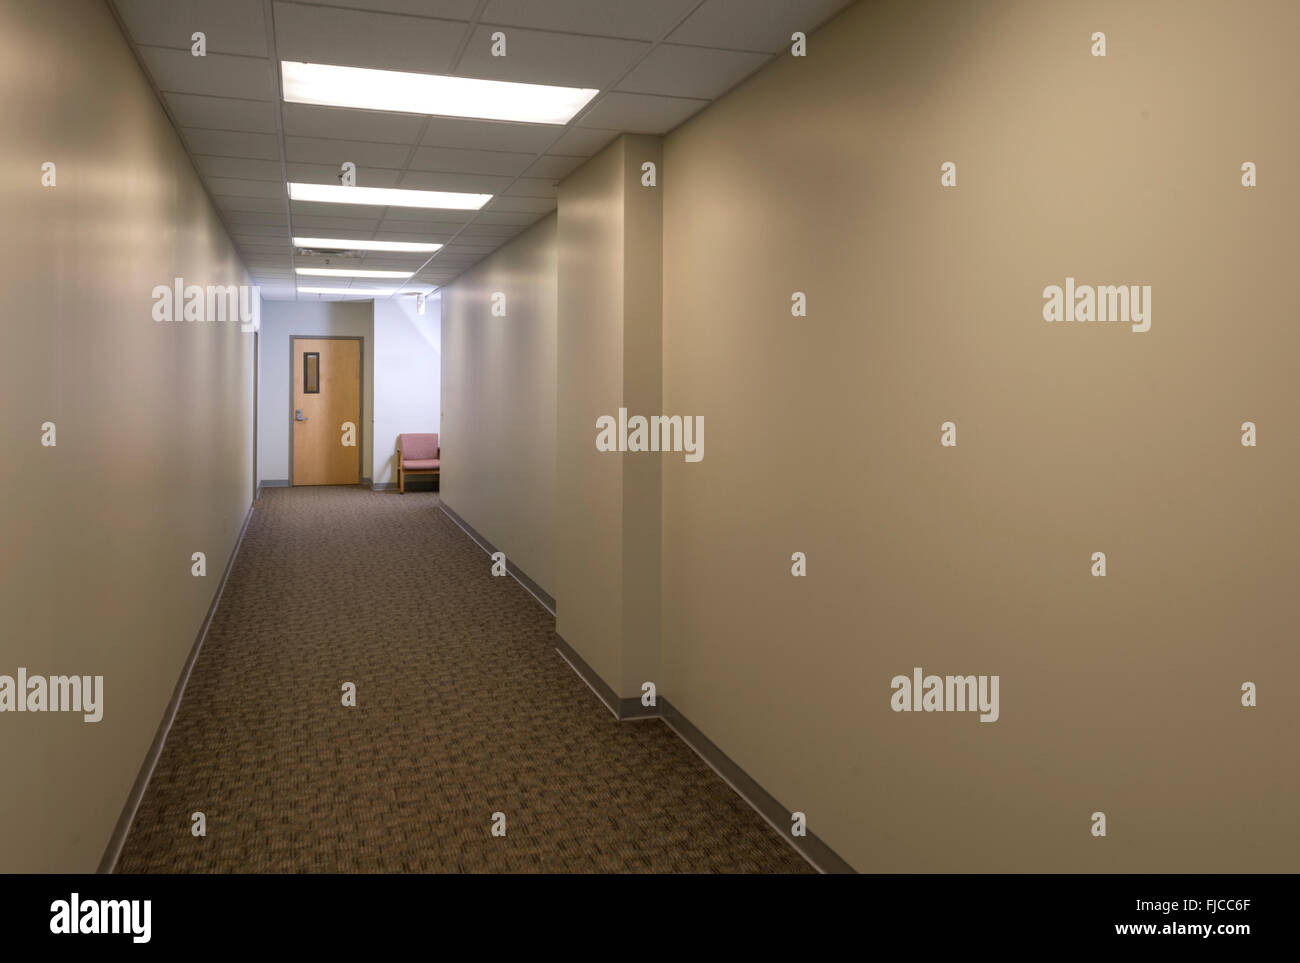 Empty Hallway With Door & Chair At End - Stock Image